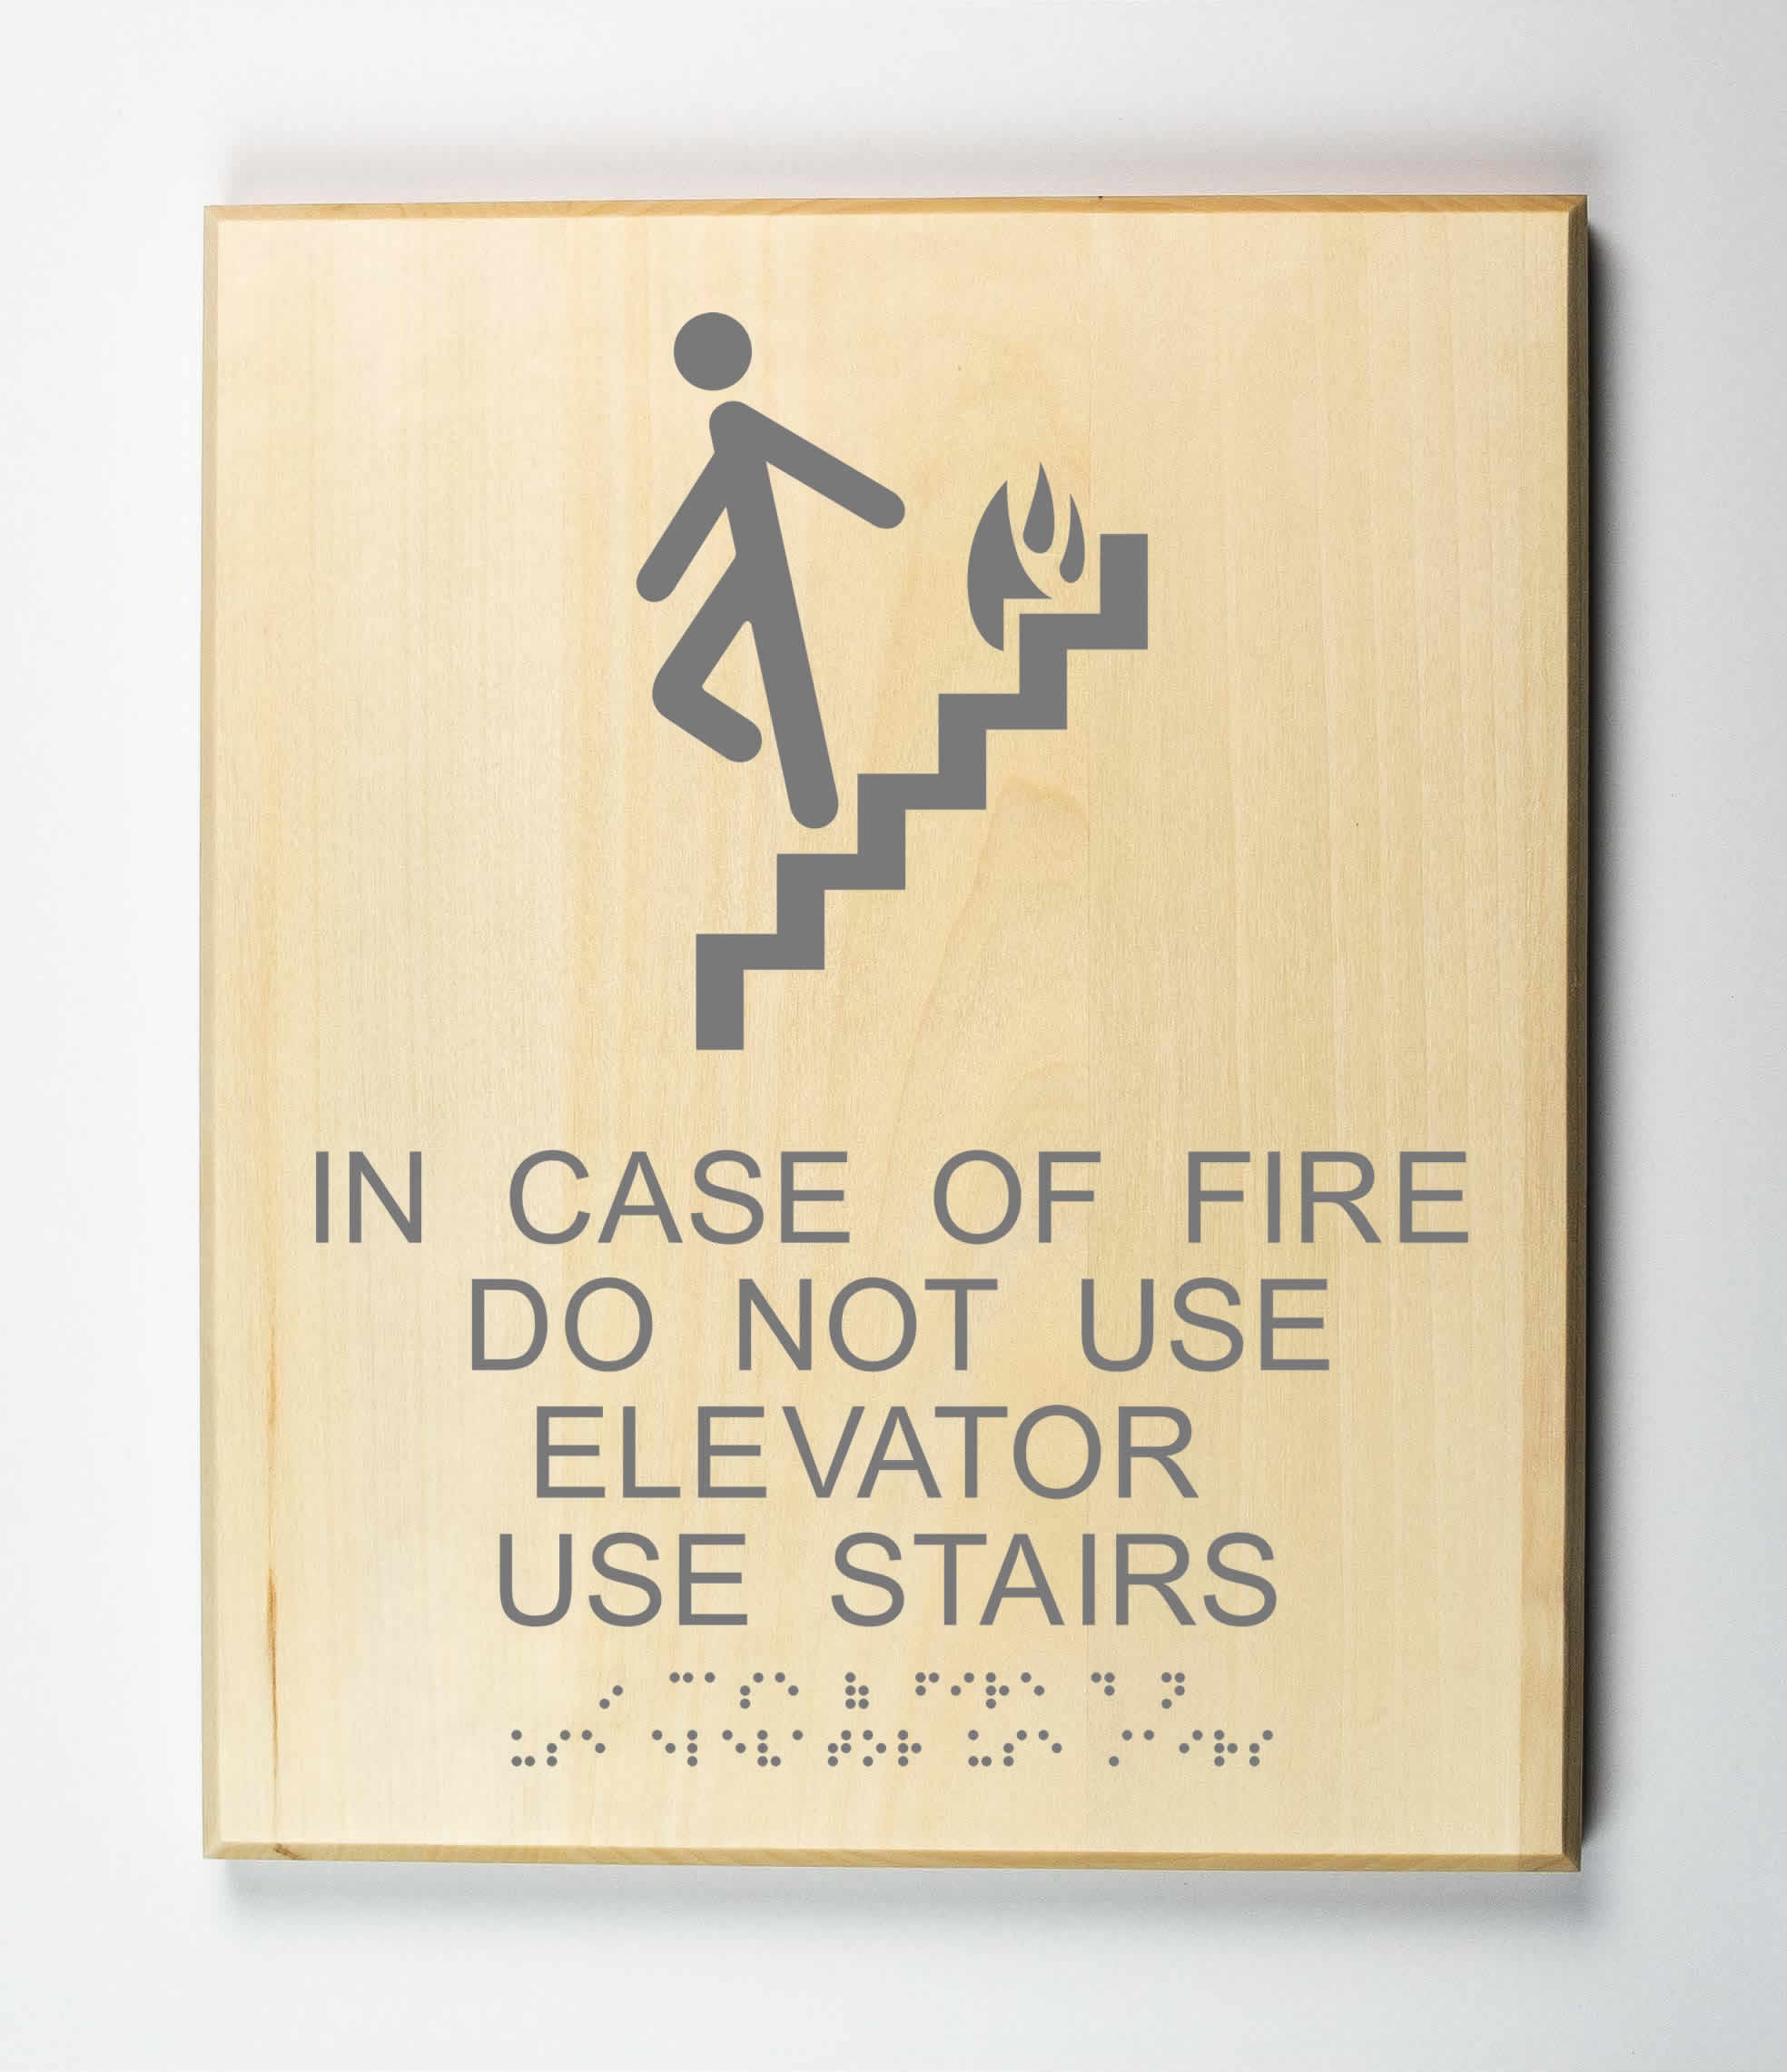 In Case of Fire Do Not Use Elevator, Use Stairs Sign, grey